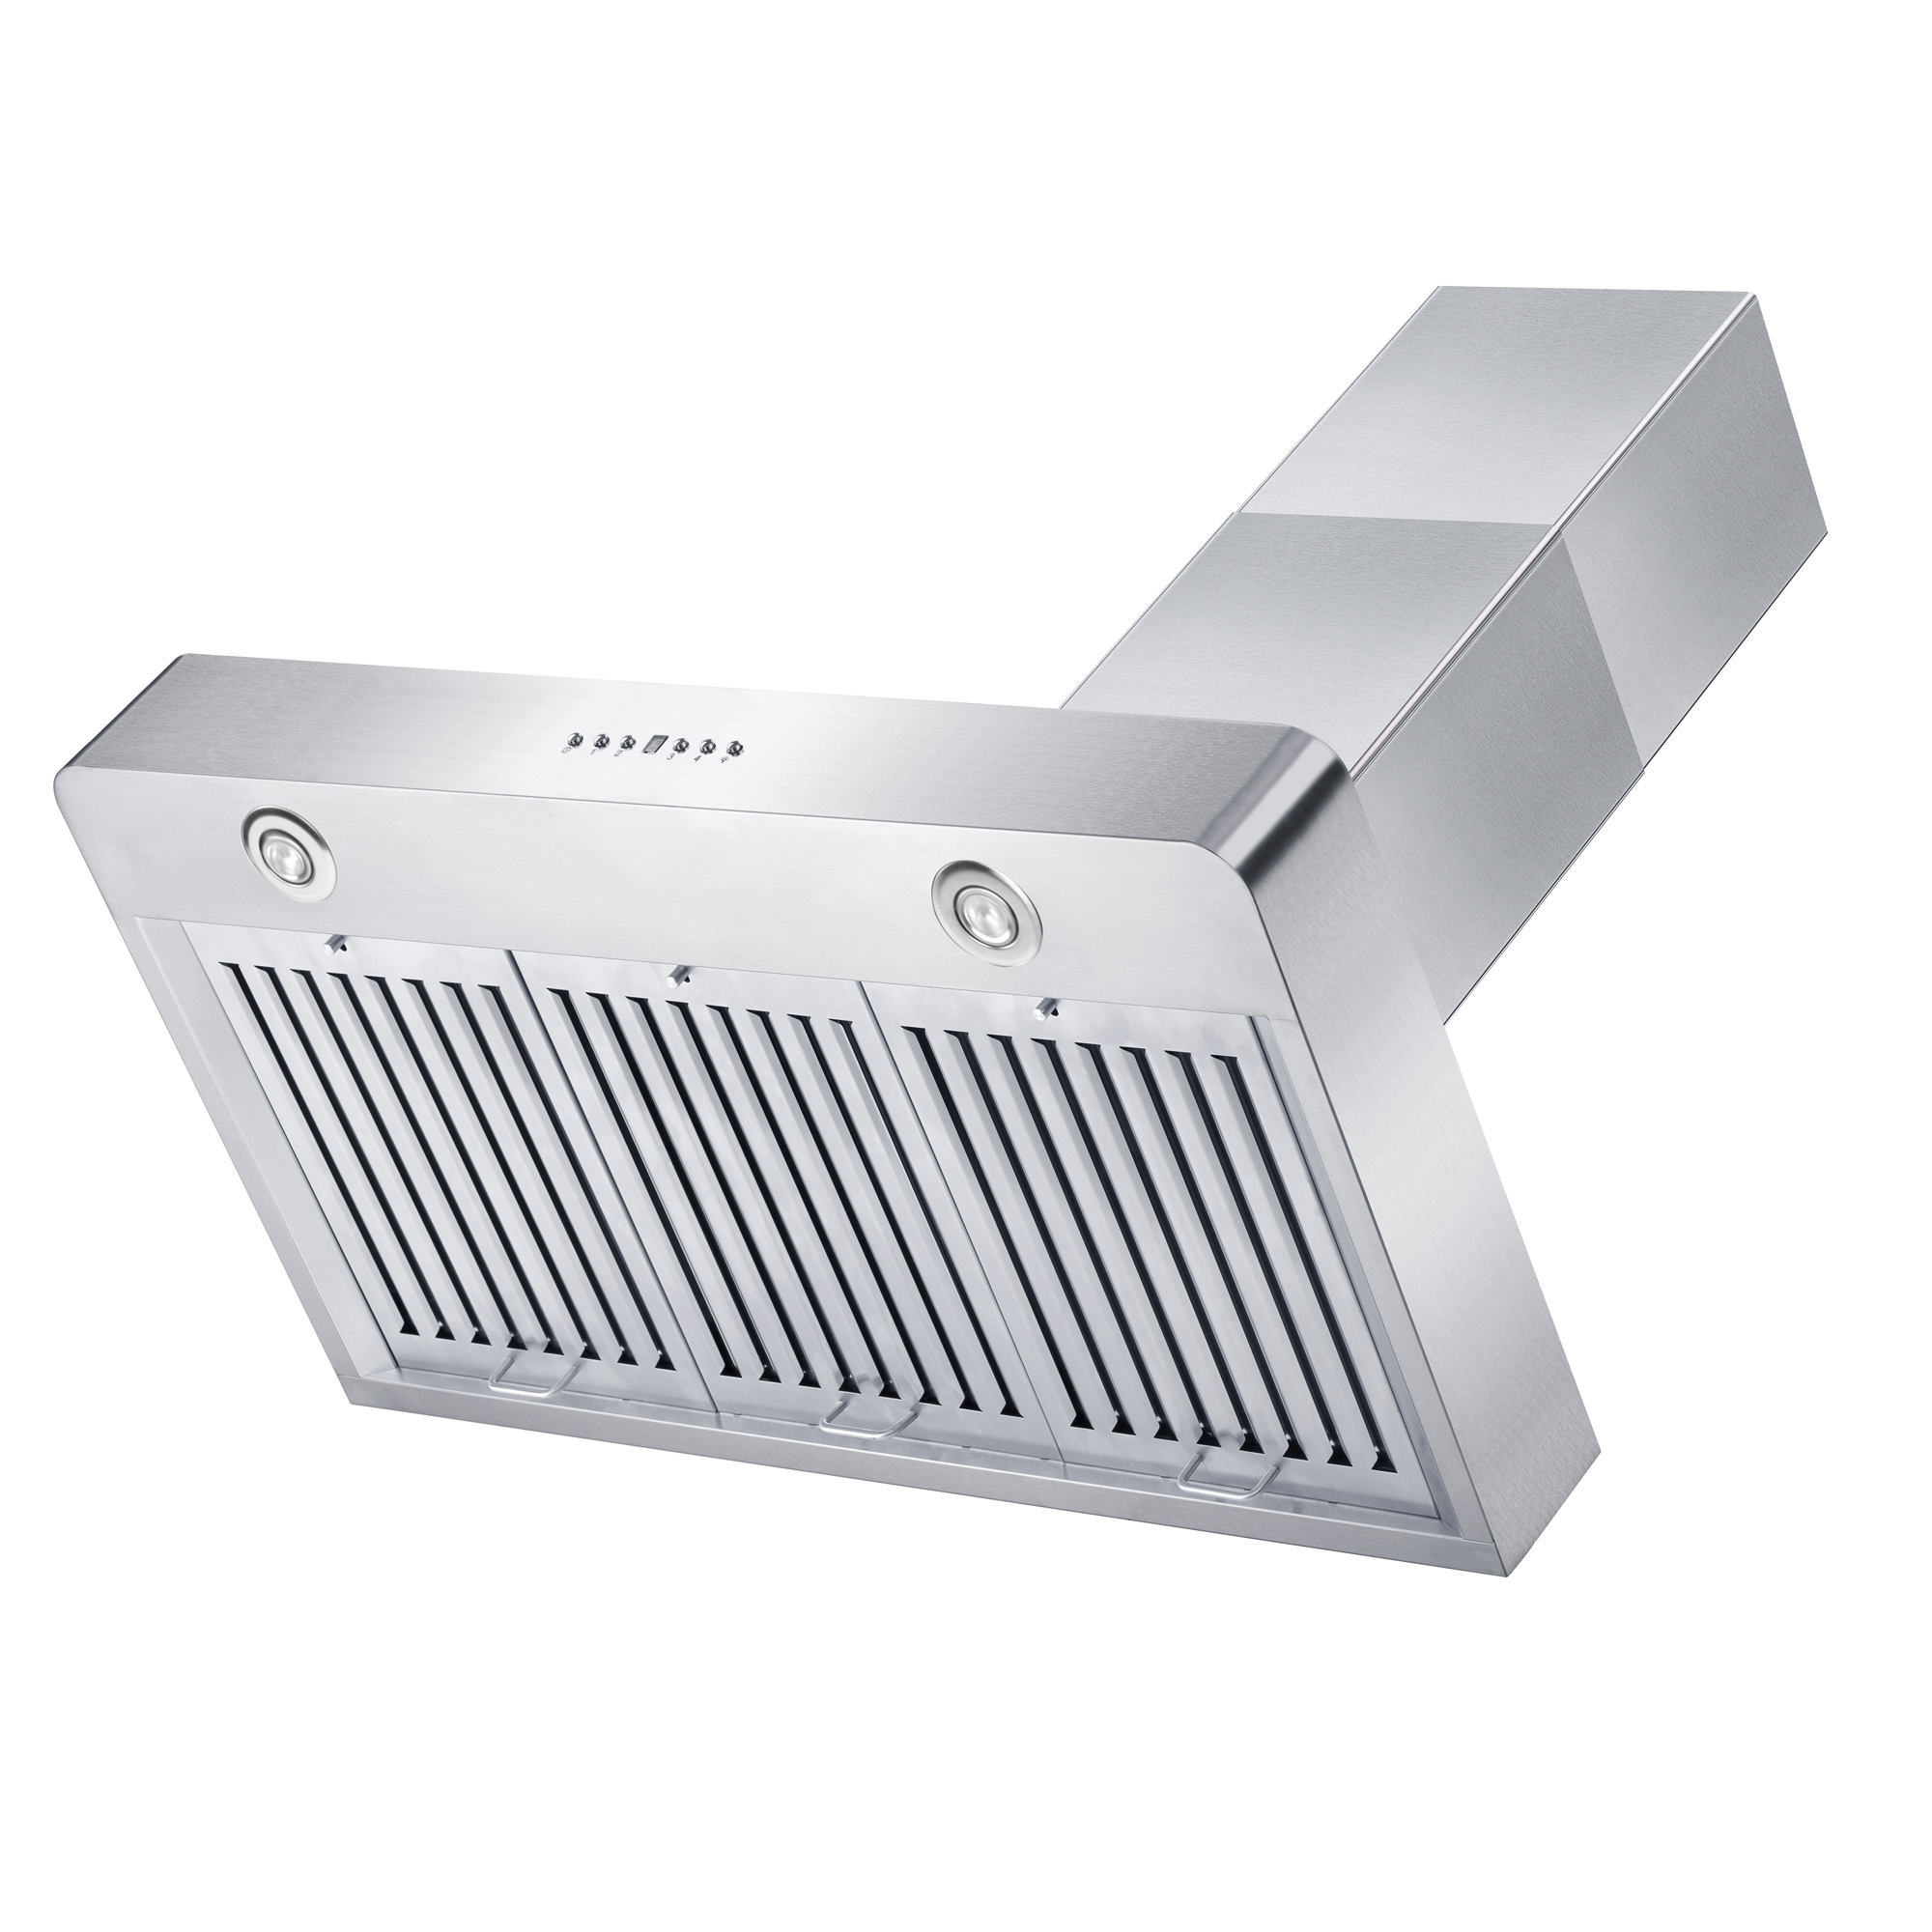 zline-stainless-steel-wall-mounted-range-hood-kf2-new-side-bottom.jpg